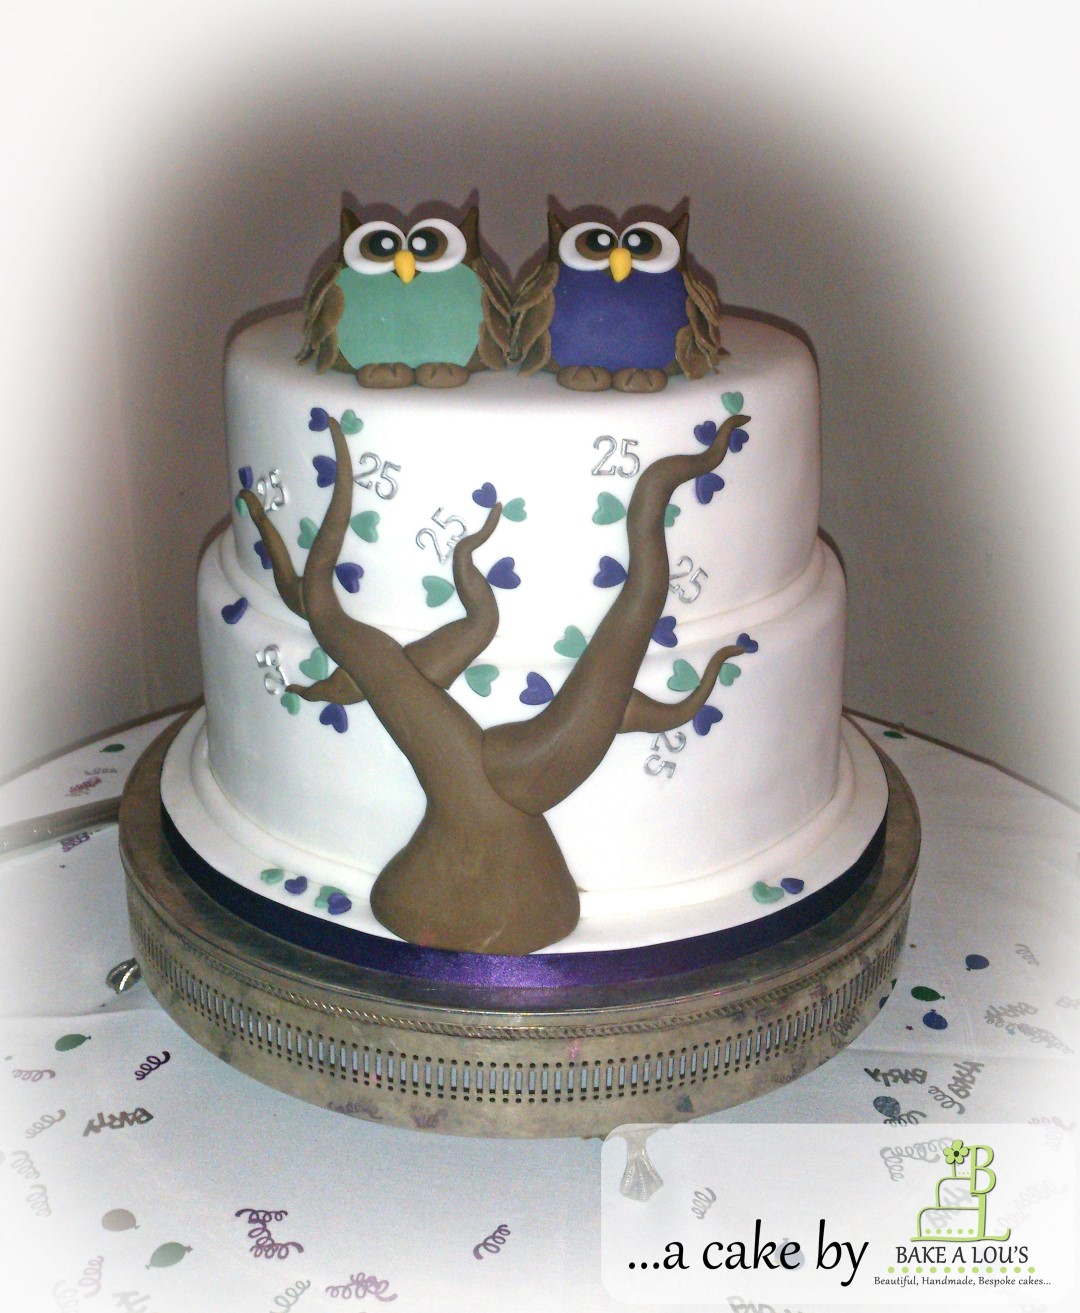 Special Anniversary Cake Images : Owl themed 25th Wedding Anniversary Cake - Bakealous